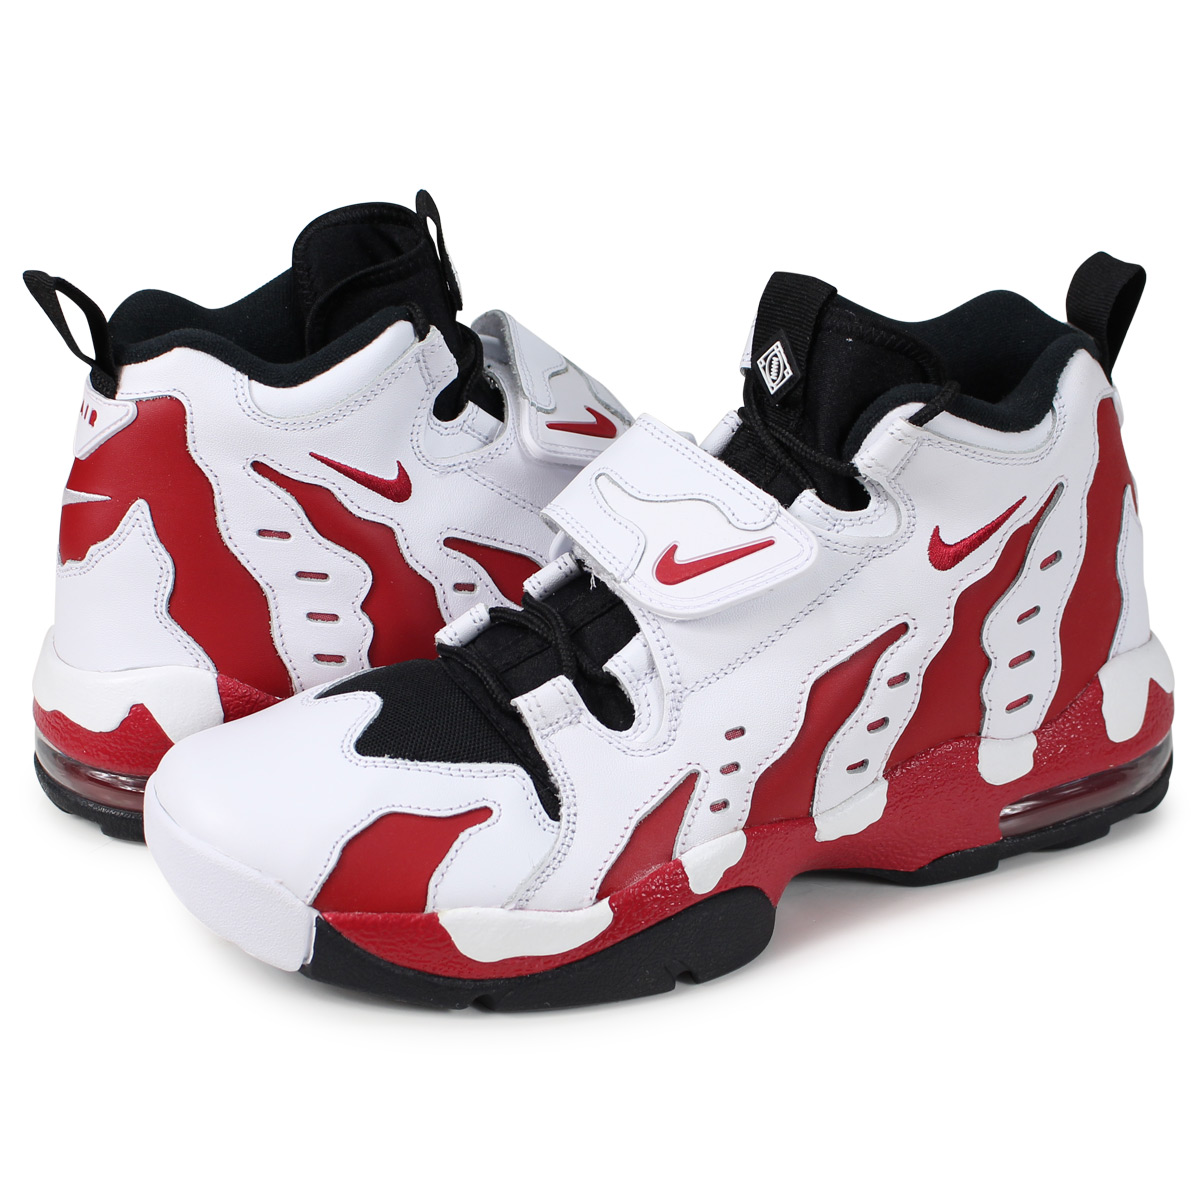 quality design 8b939 8e6c4  brand NIKE getting high popularity from sneakers freak .